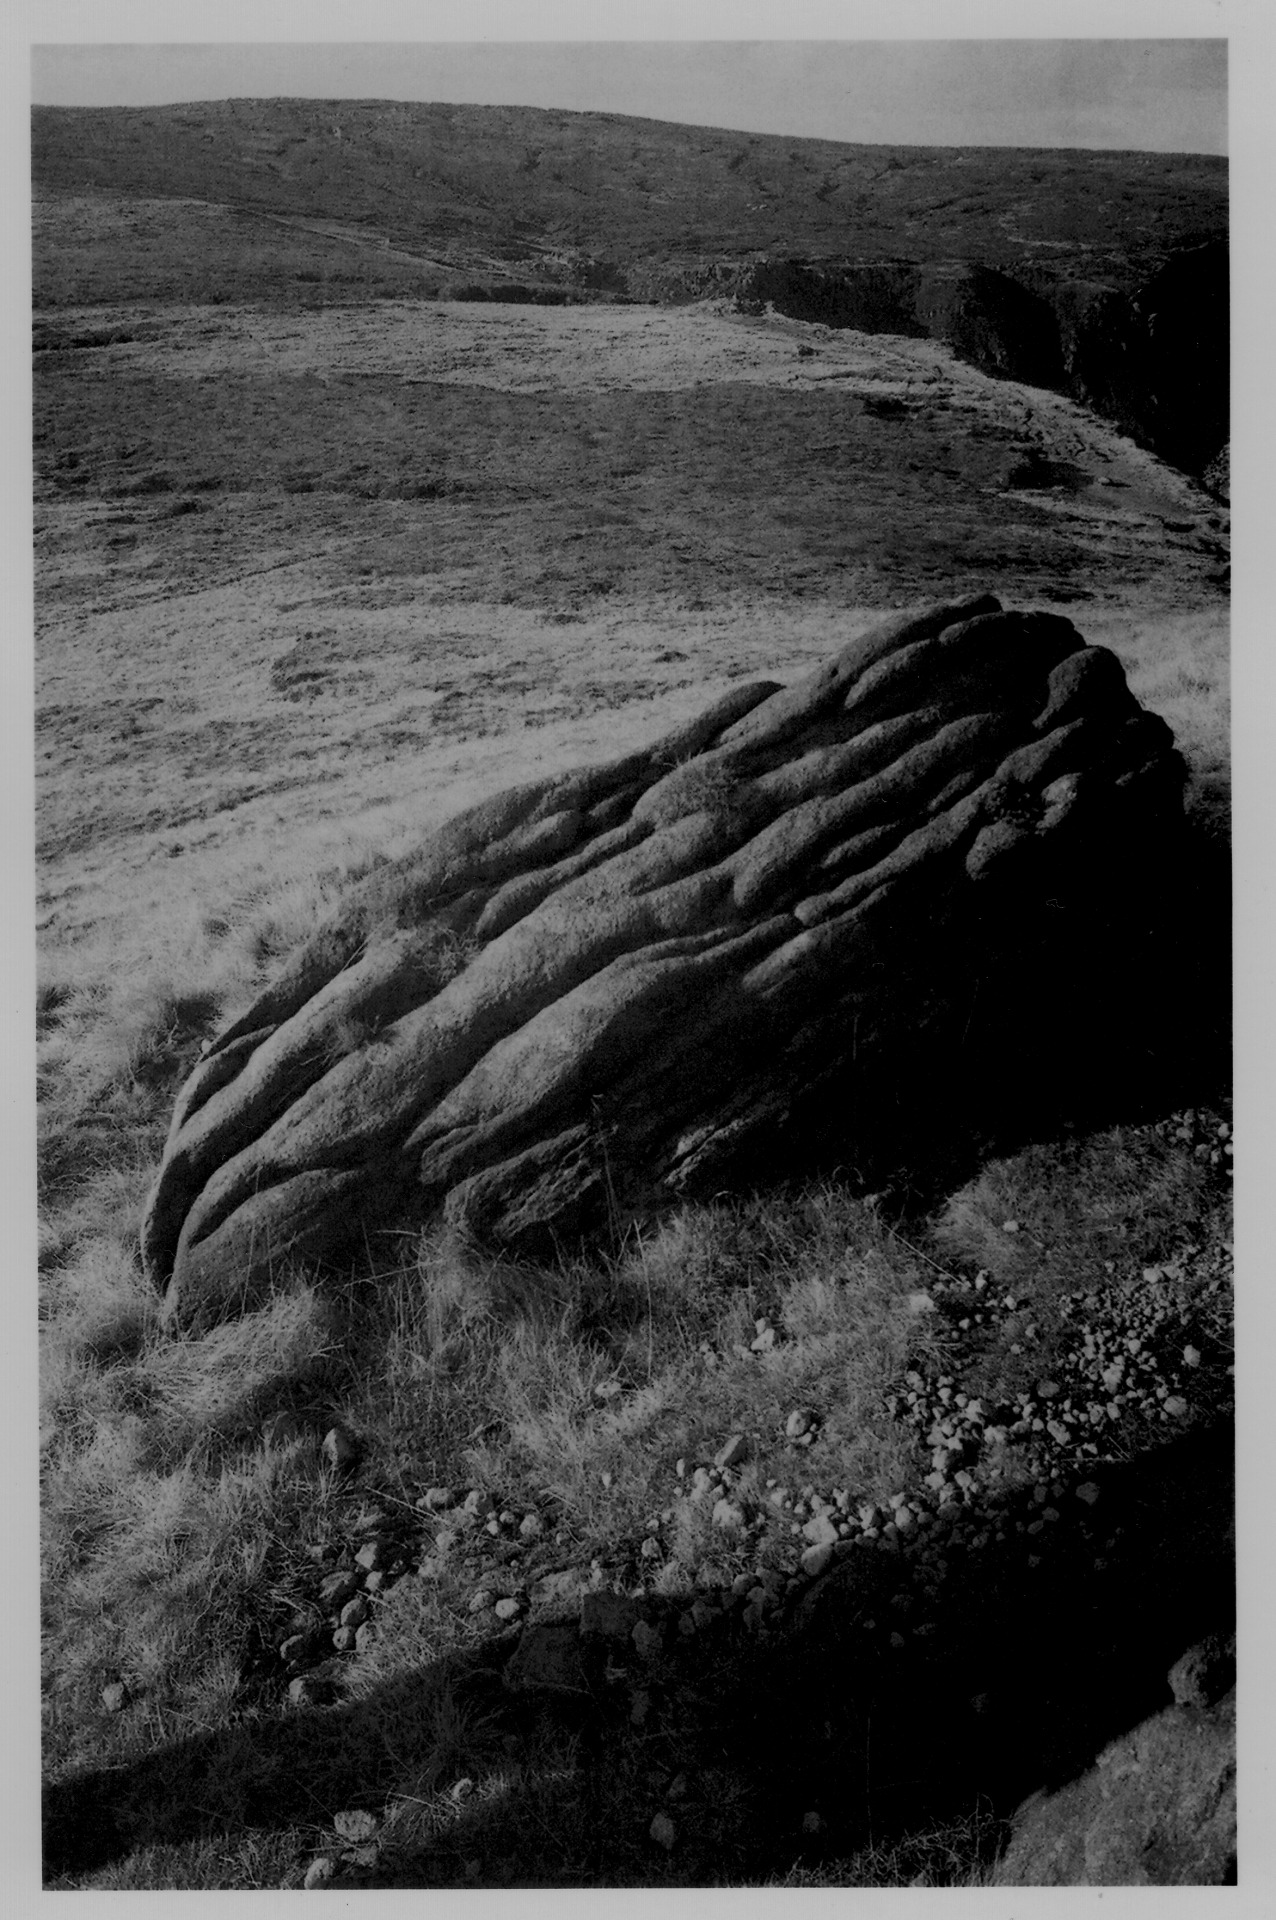 Wrinkly Rocks of the Kinder Scout